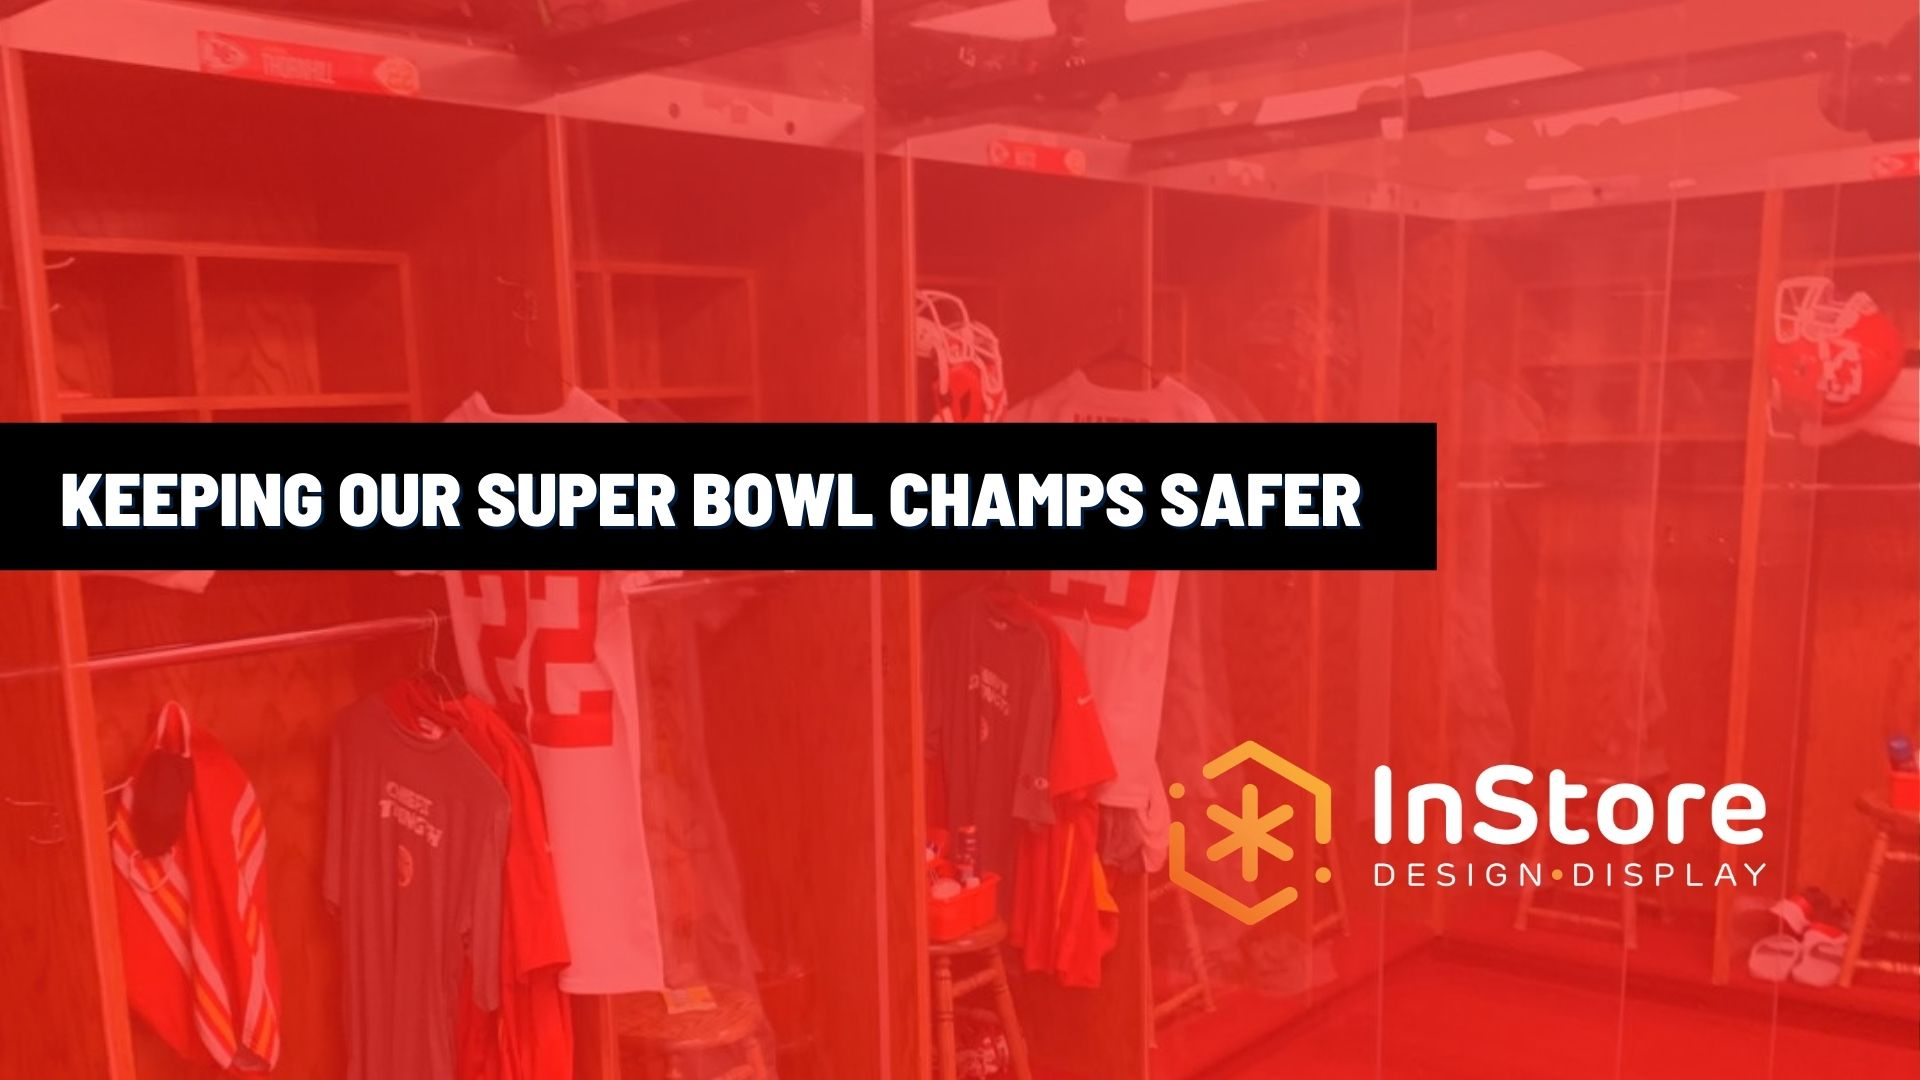 Keeping Our Super Bowl Champs Safer